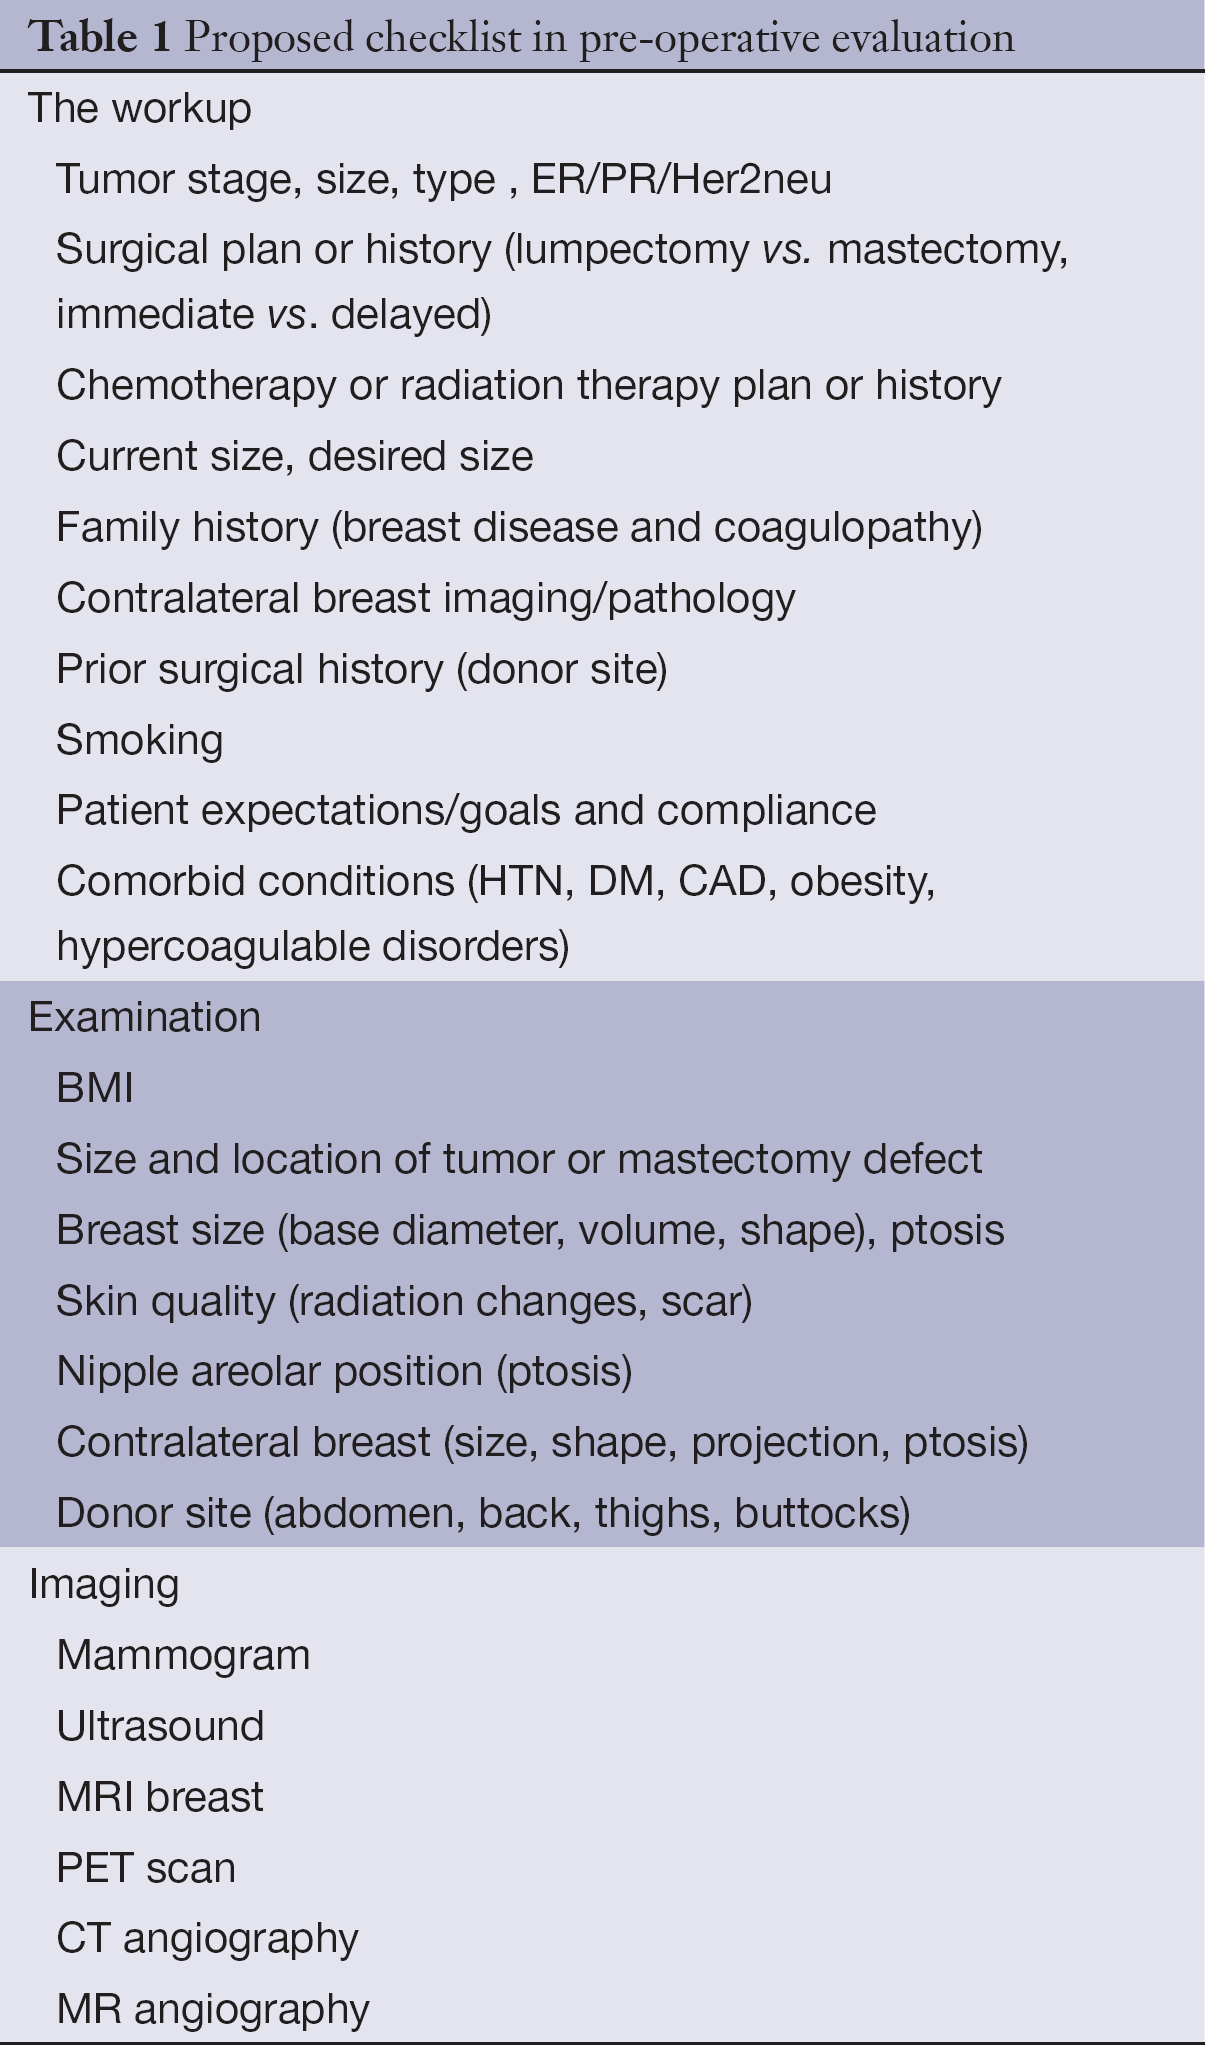 Essential elements of the preoperative breast reconstruction